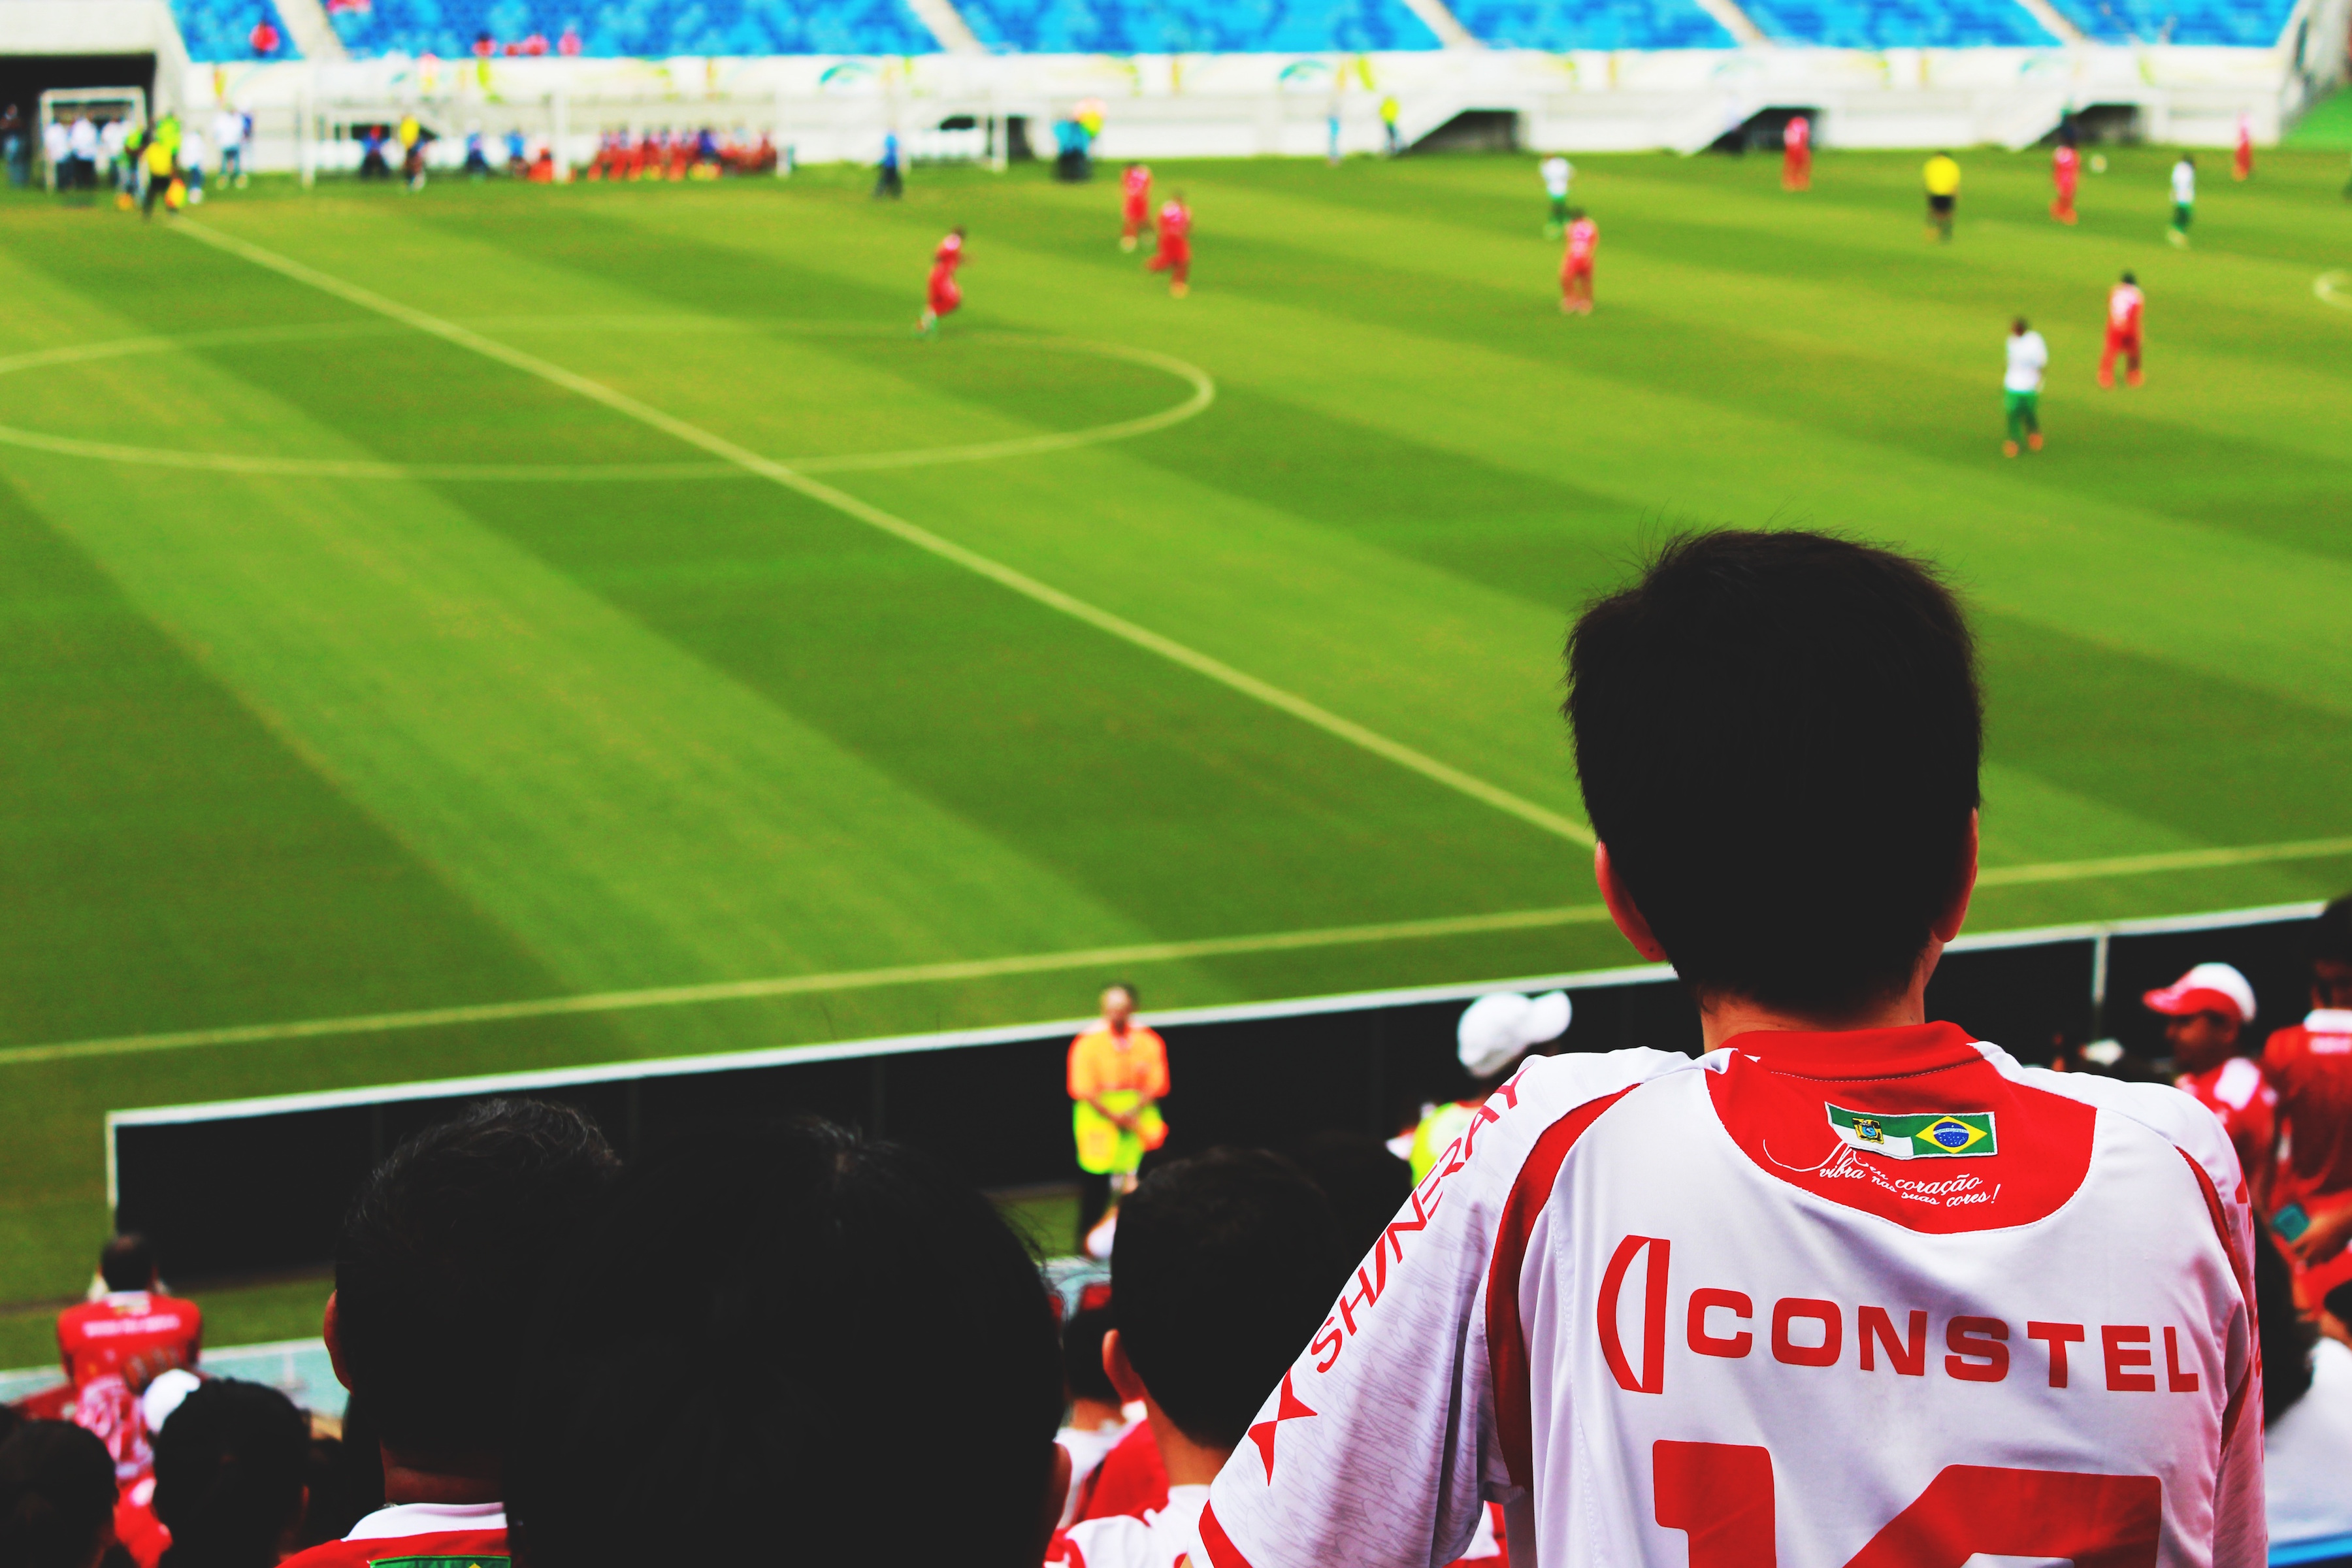 A young pectator is looking football players from the stands of a stadium. The Cross Language Processing help the crowd to understand what happen through display